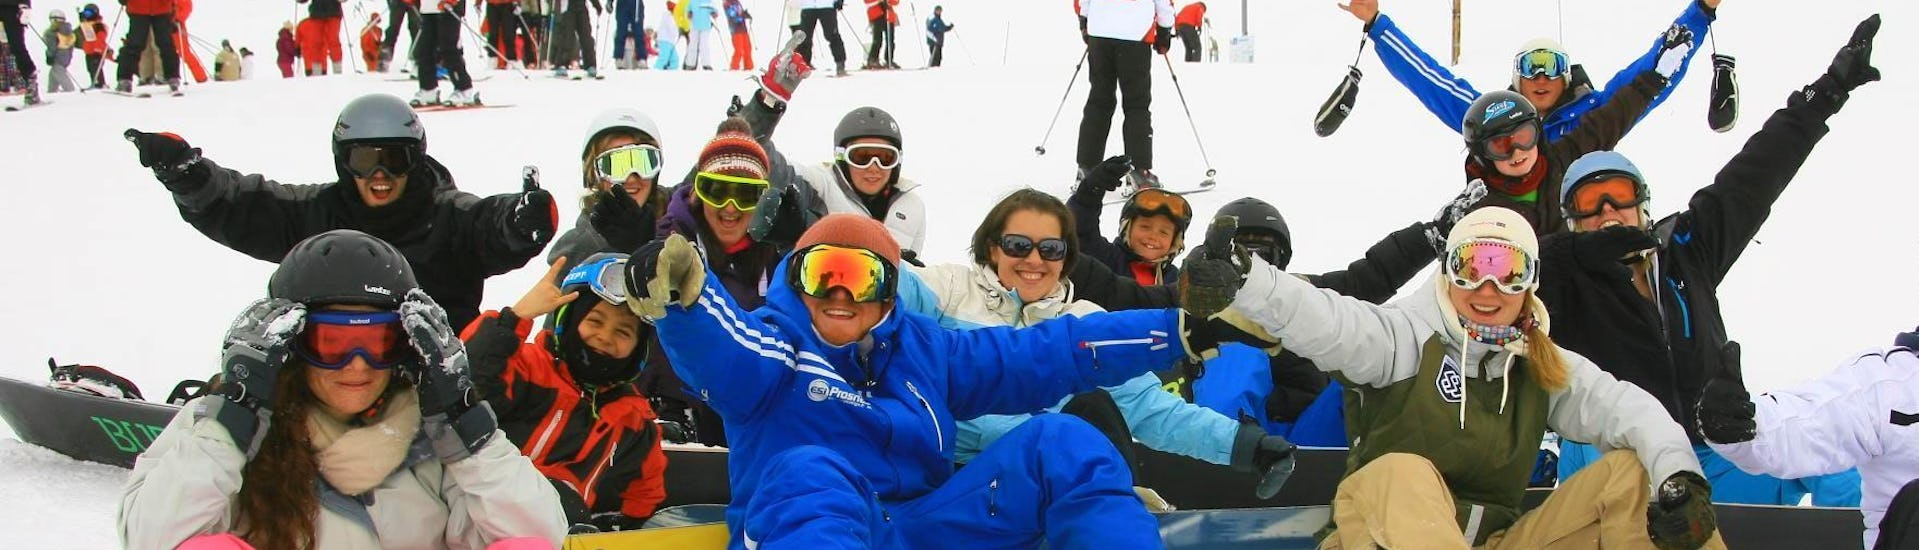 A group of snowboarders is sitting in the snow surrounding their snowboard instructor from the ski school Prosneige Méribel during theirSnowboarding Lessons for Adults - All Levels.